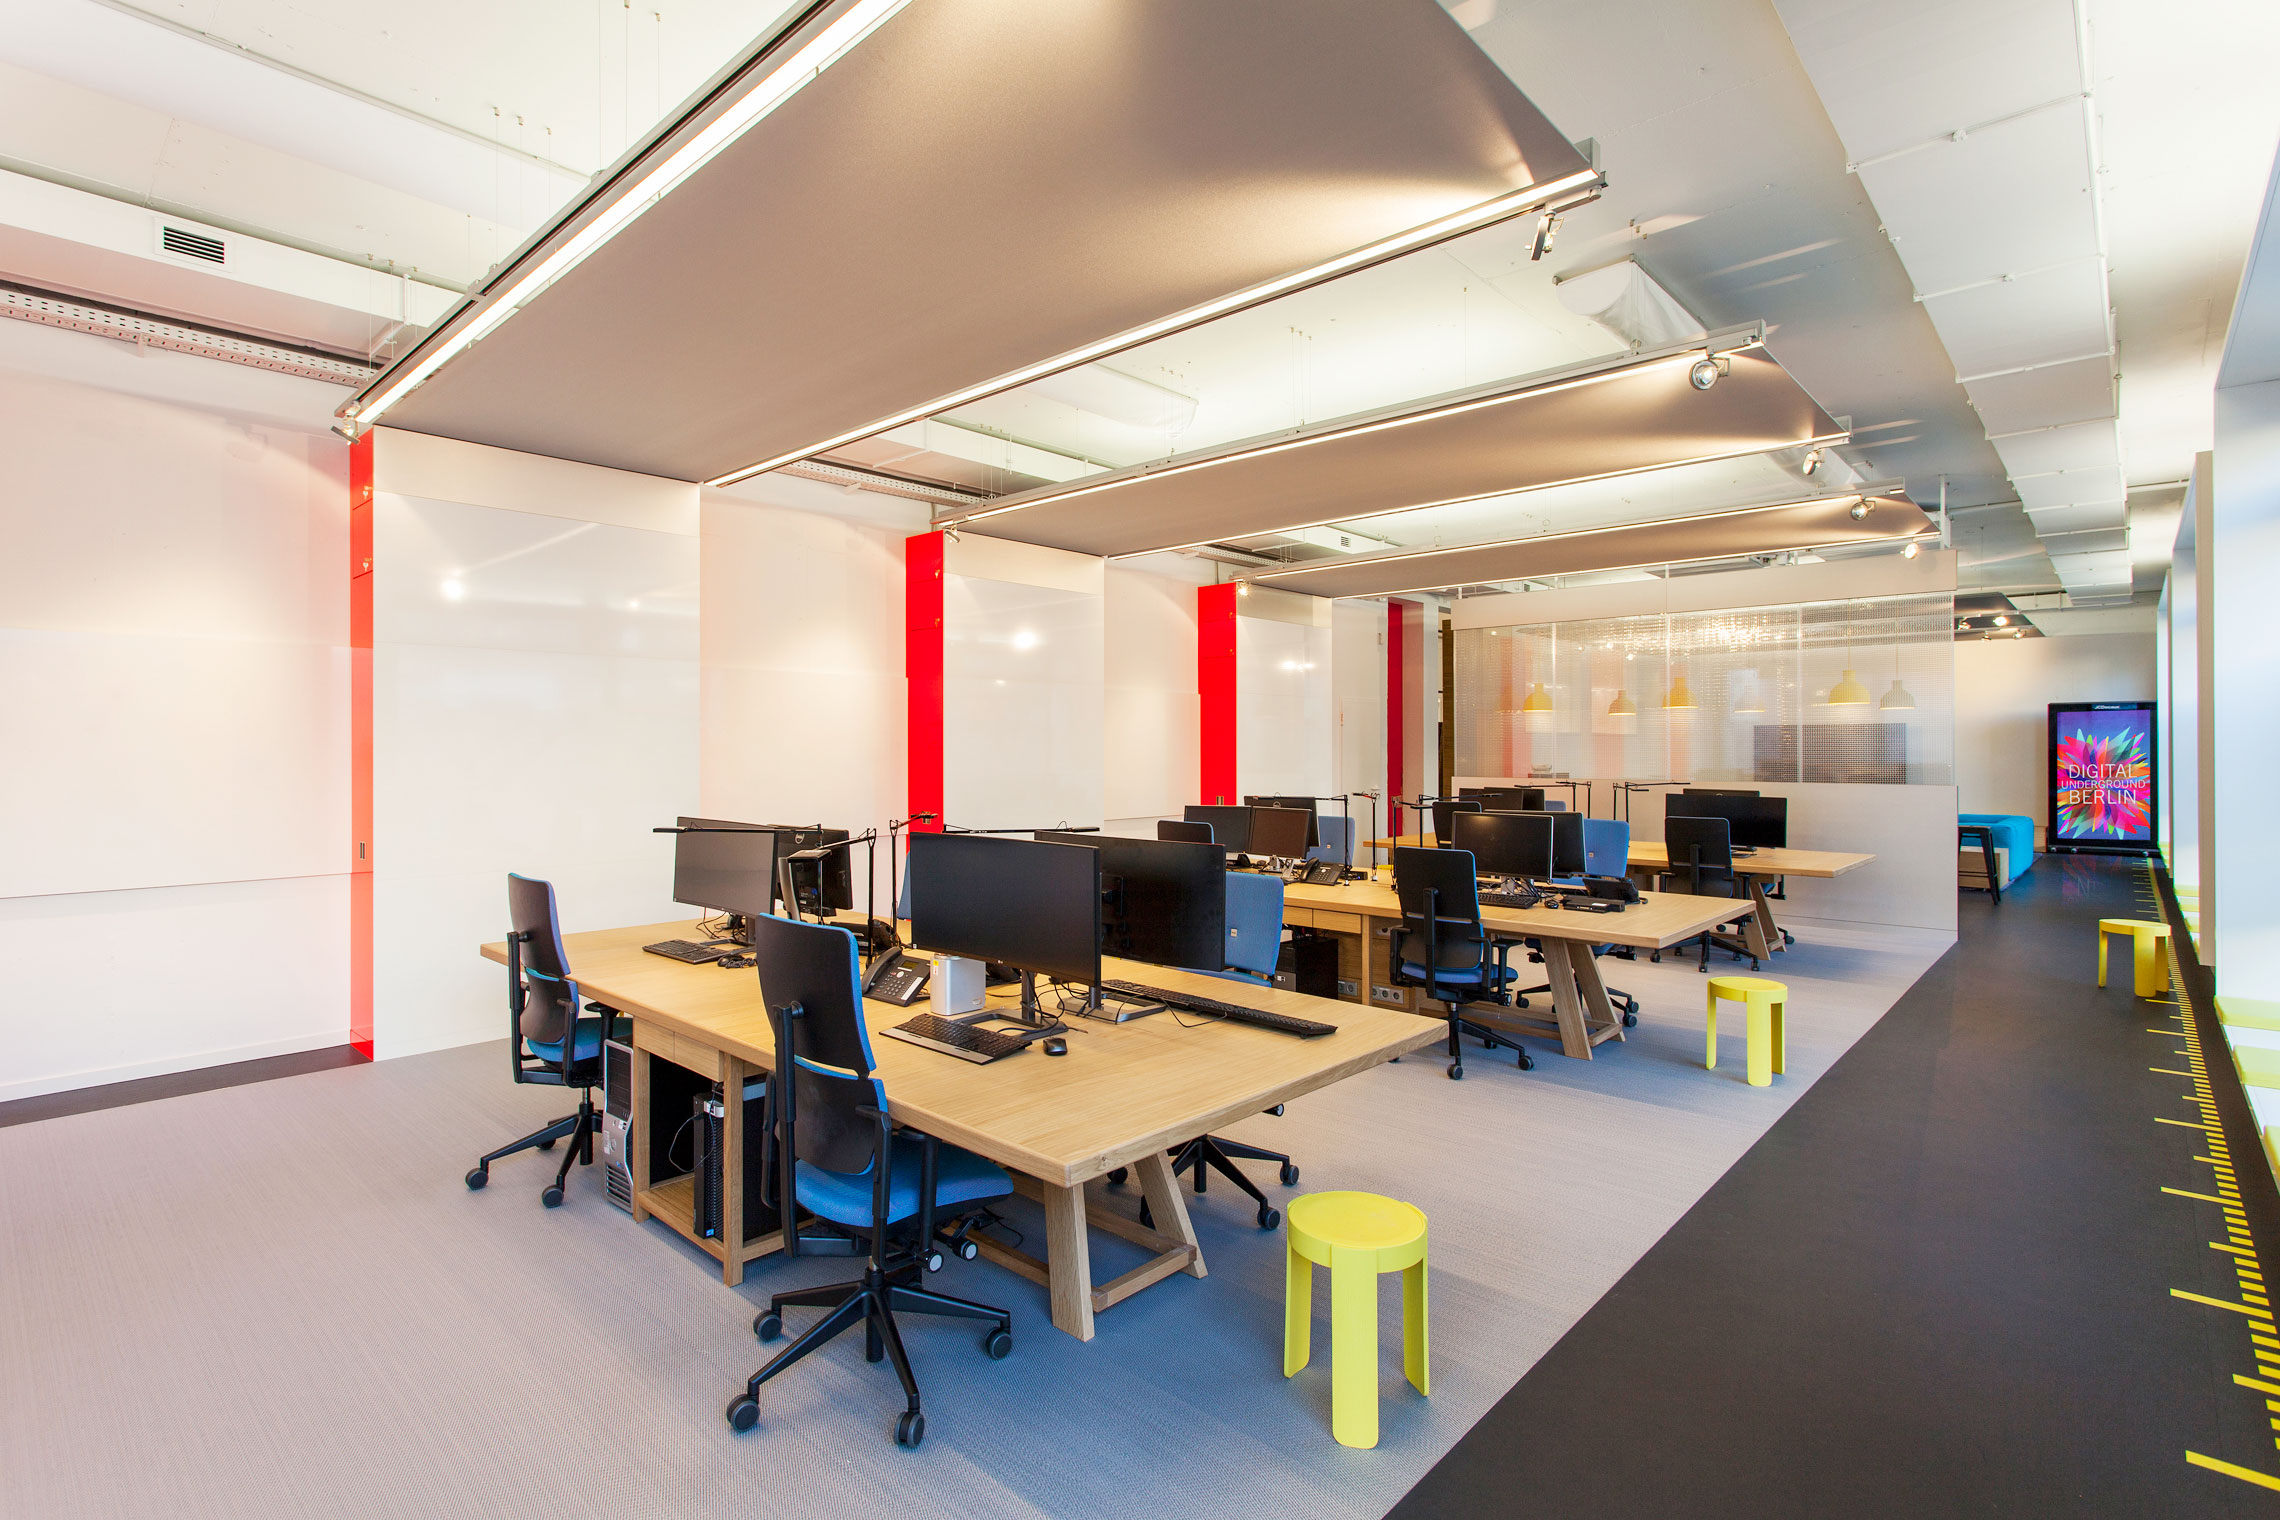 office cubicle lighting. The New Office Of Wall AG Is Successful Counter-draft To Anonymous Cubicle. Cubicle Lighting V